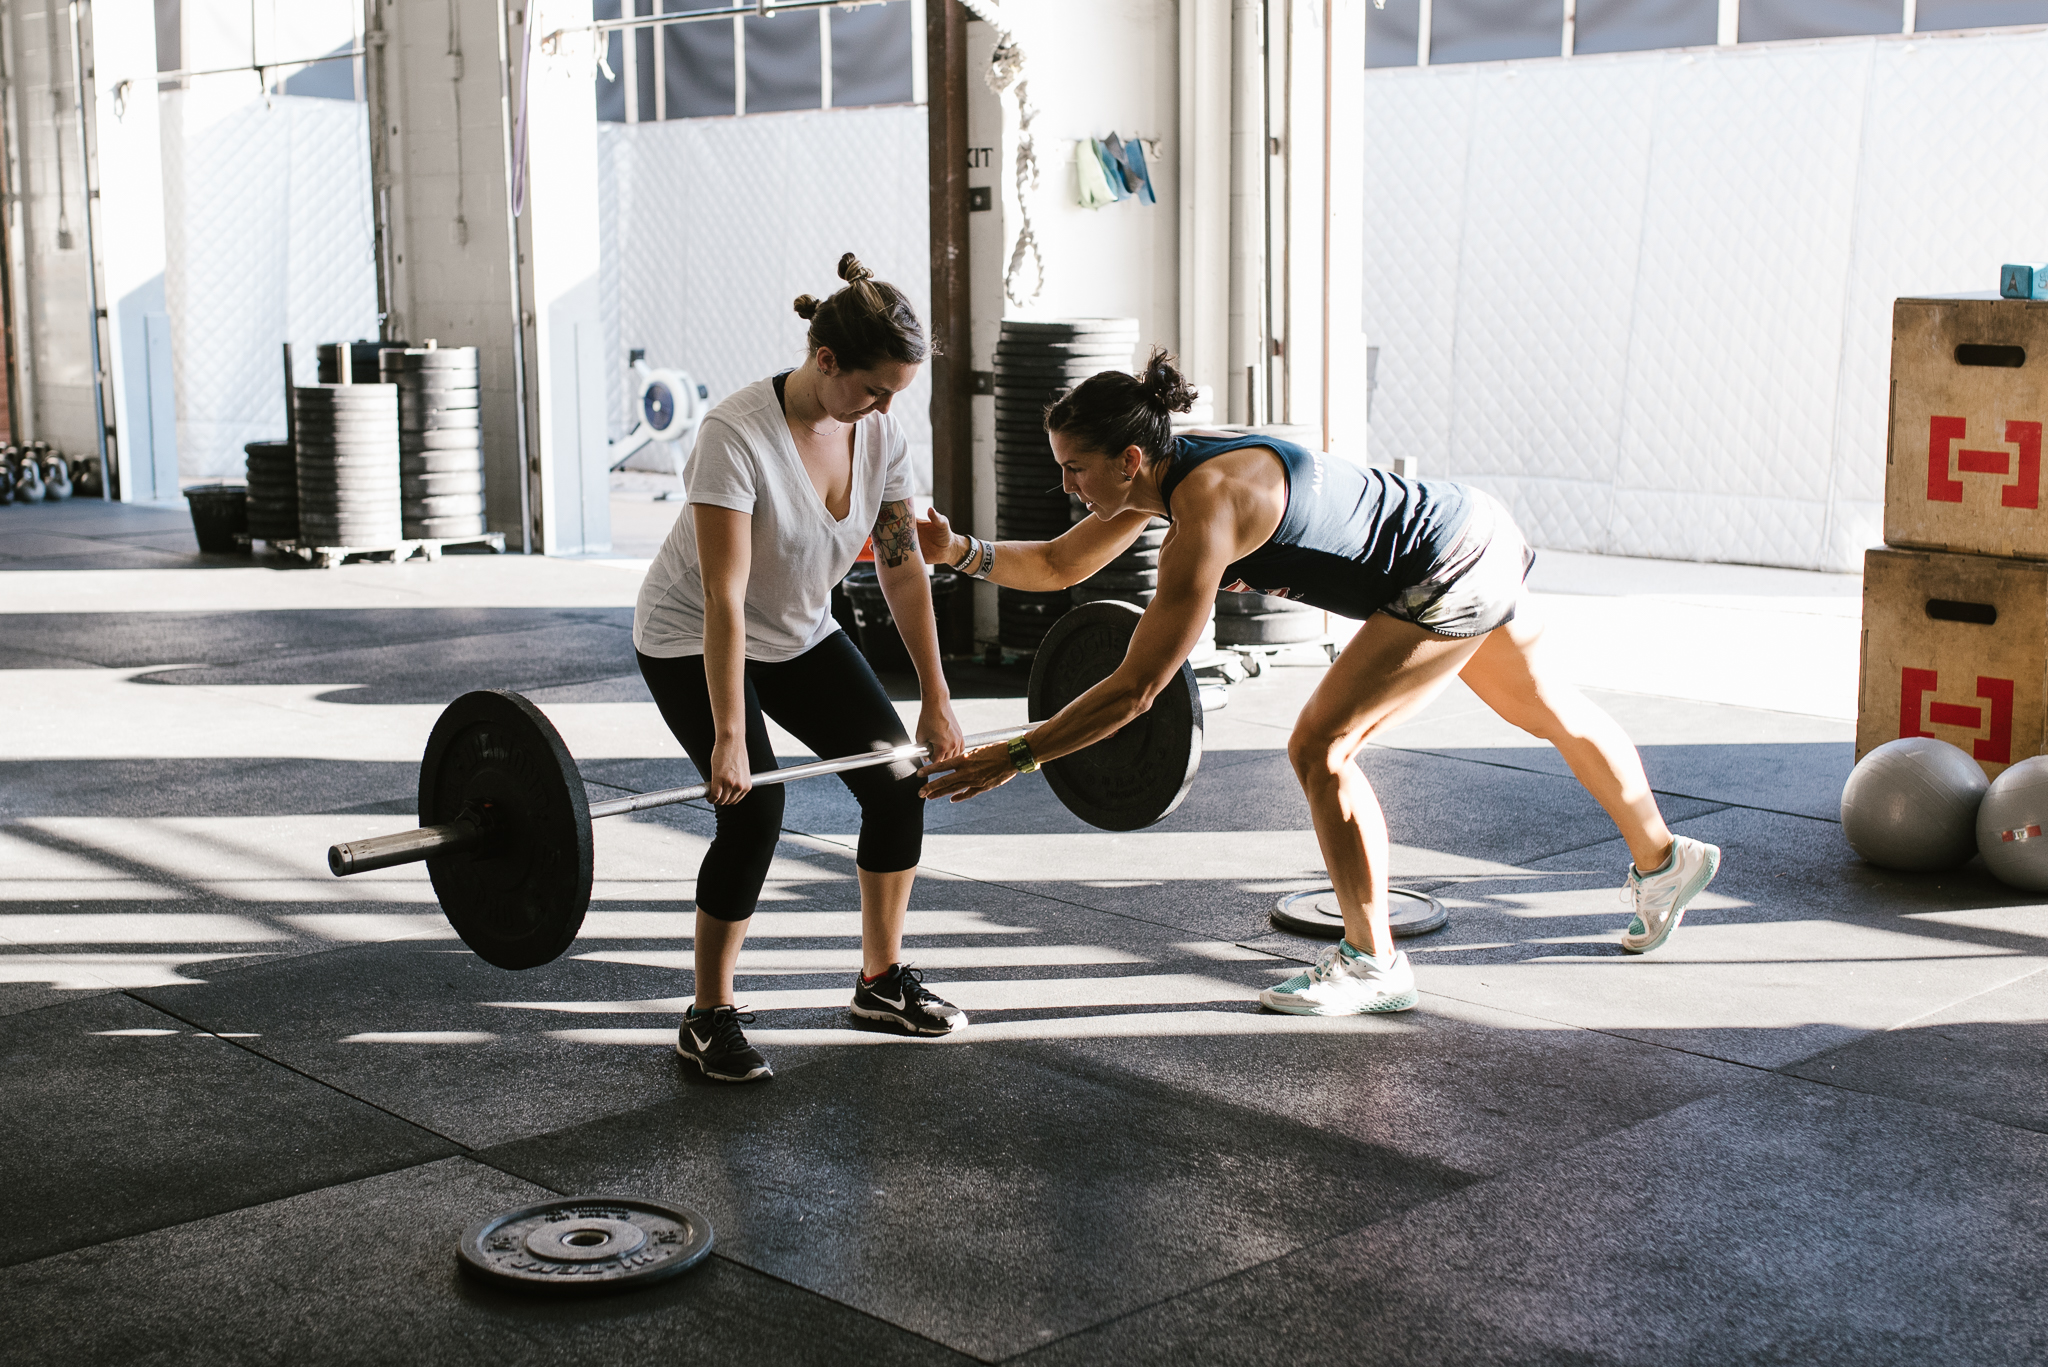 Austin and Round Rock Commercial Photography - Emily Ingalls Photography - Sports and Fitness Photography - CrossFit Central_CrossFit and Weight lifting Photography-7.jpg